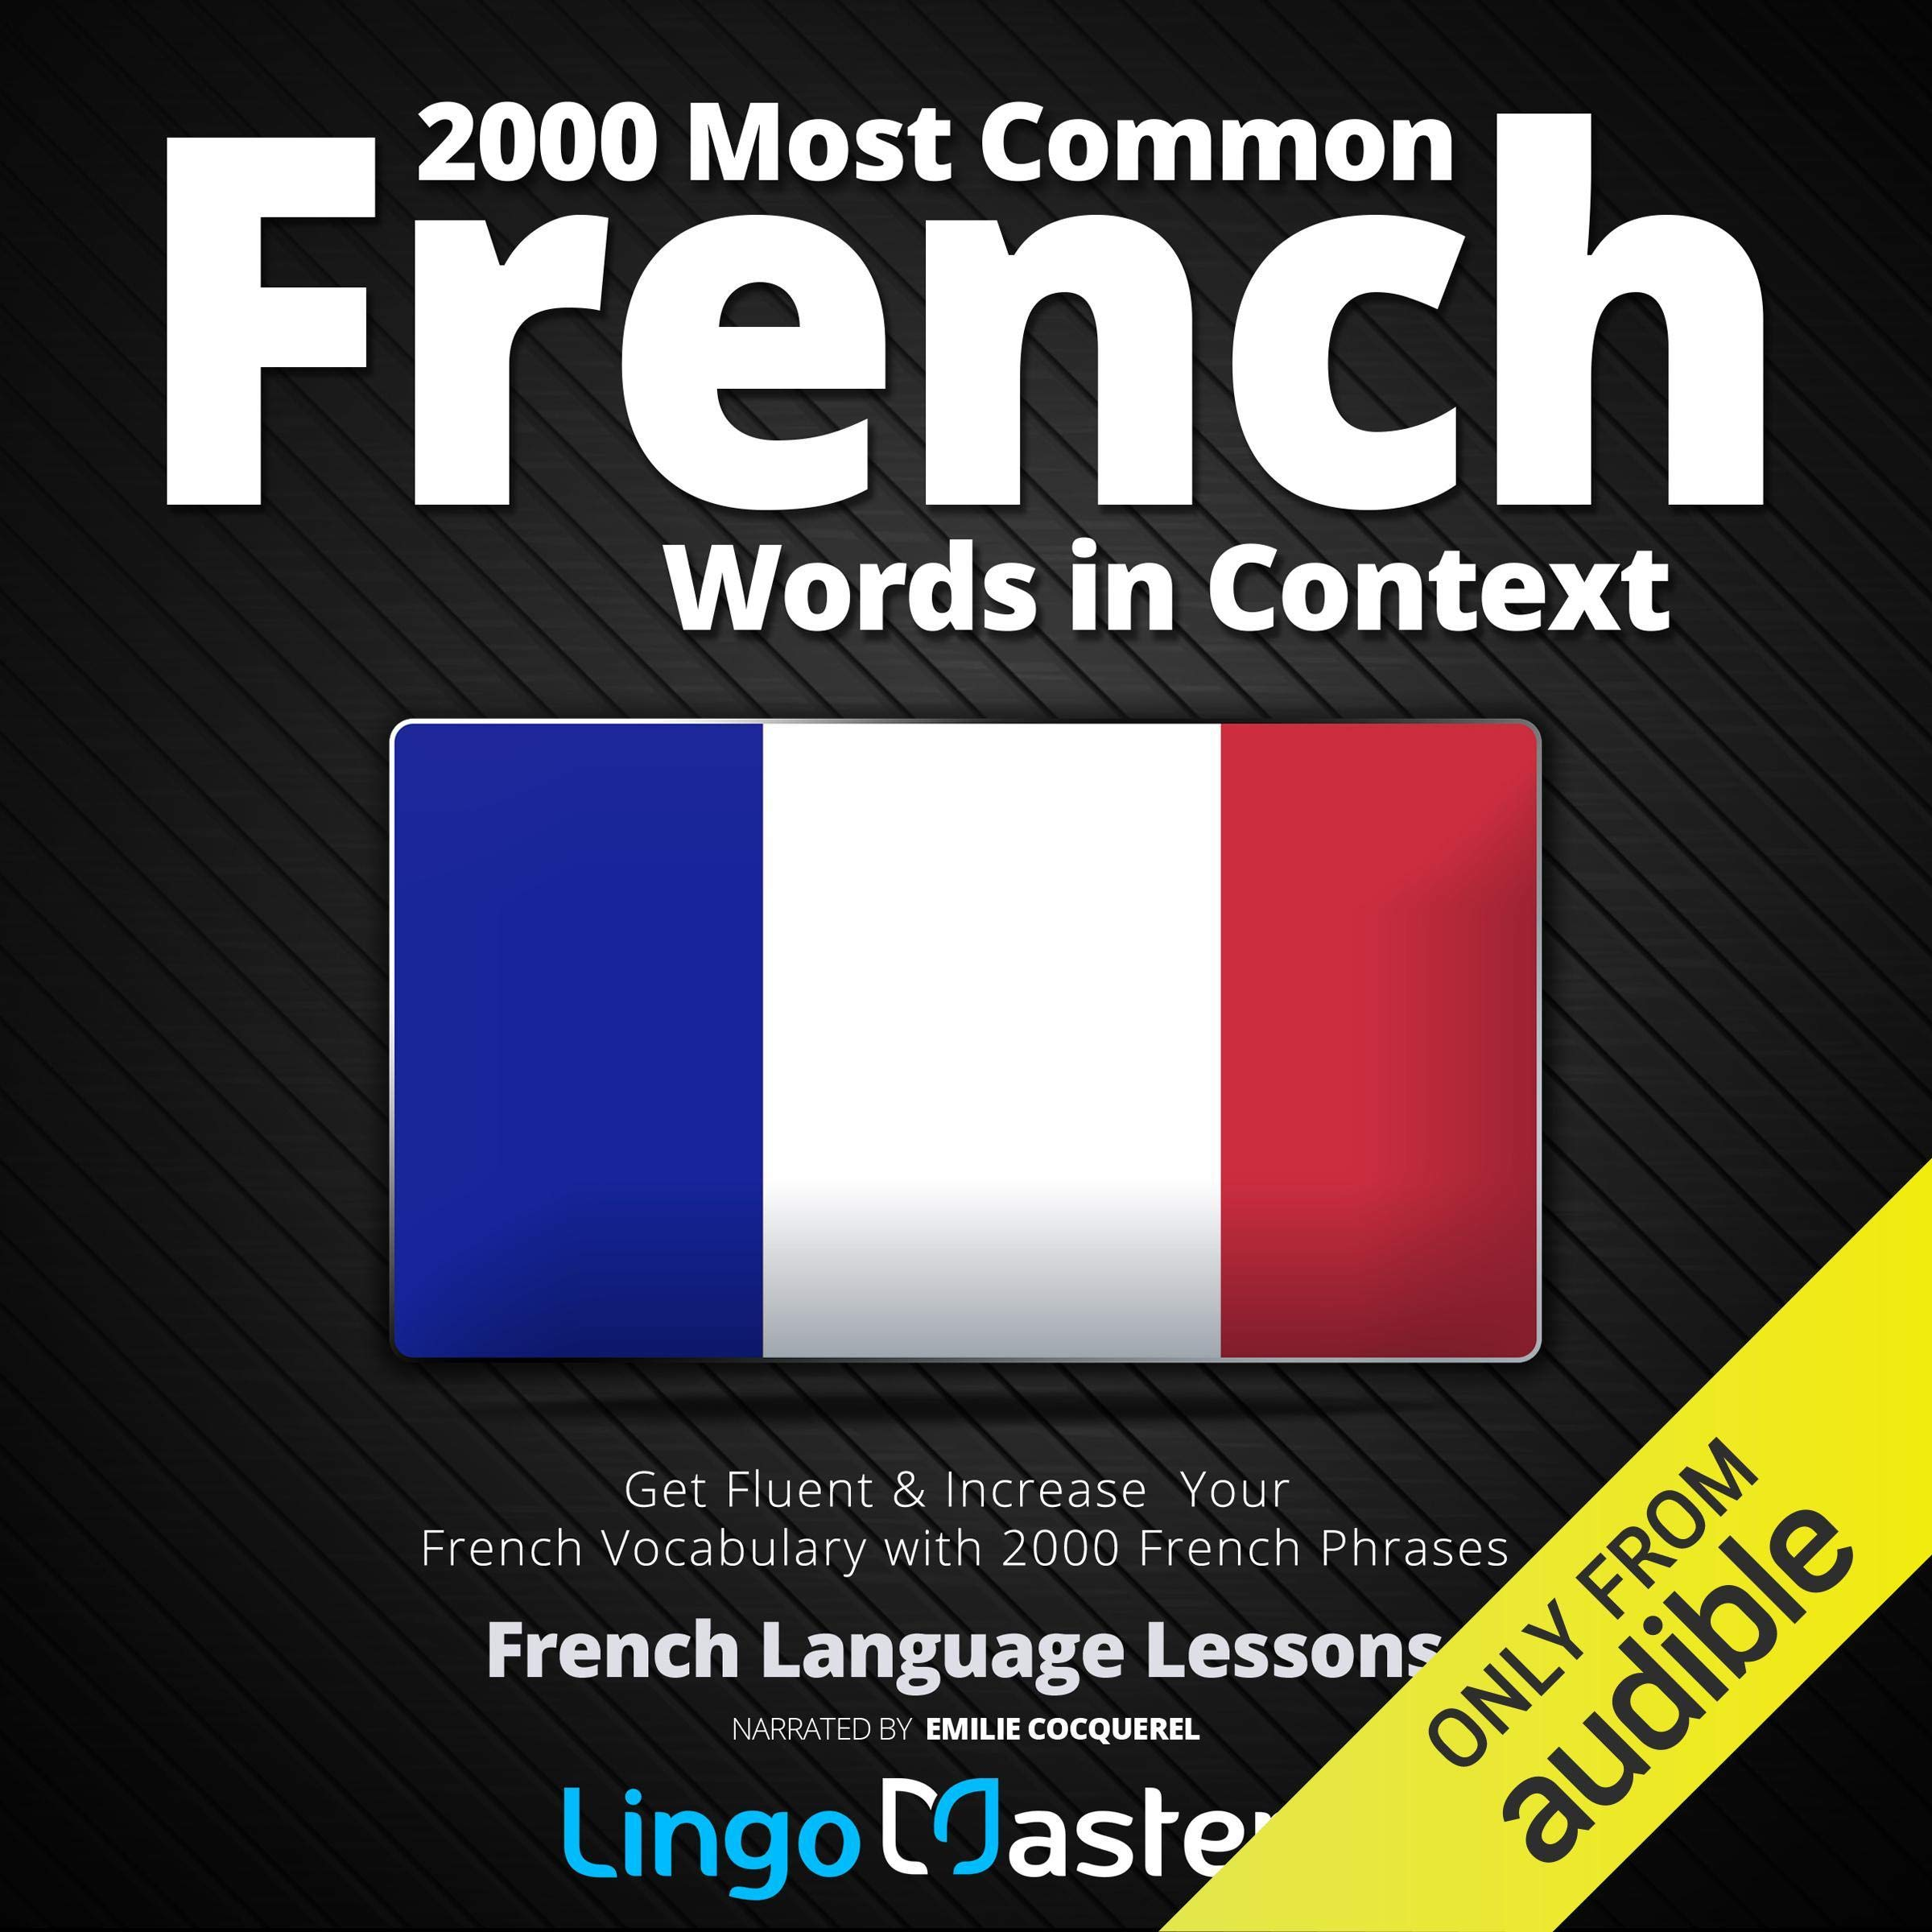 2000 Most Common French Words In Context  Get Fluent And Increase Your French Vocabulary With 2000 French Phrases